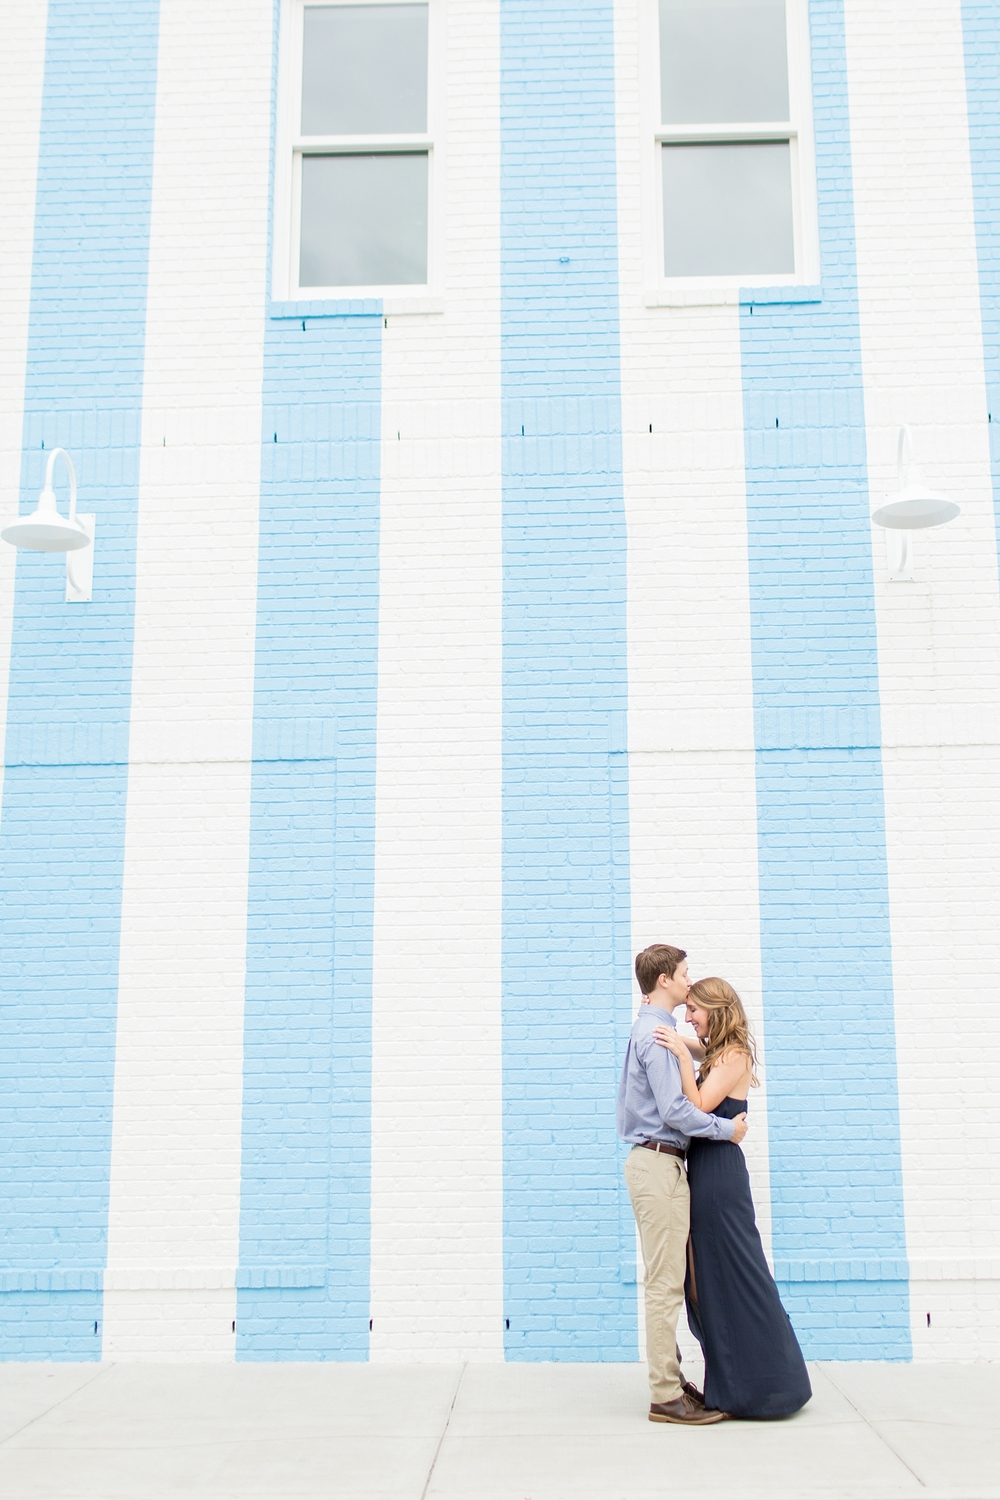 Erin & Jackson Engagement-275_anna grace photography nashville tennessee engagement photographer destination photographer photo.jpg